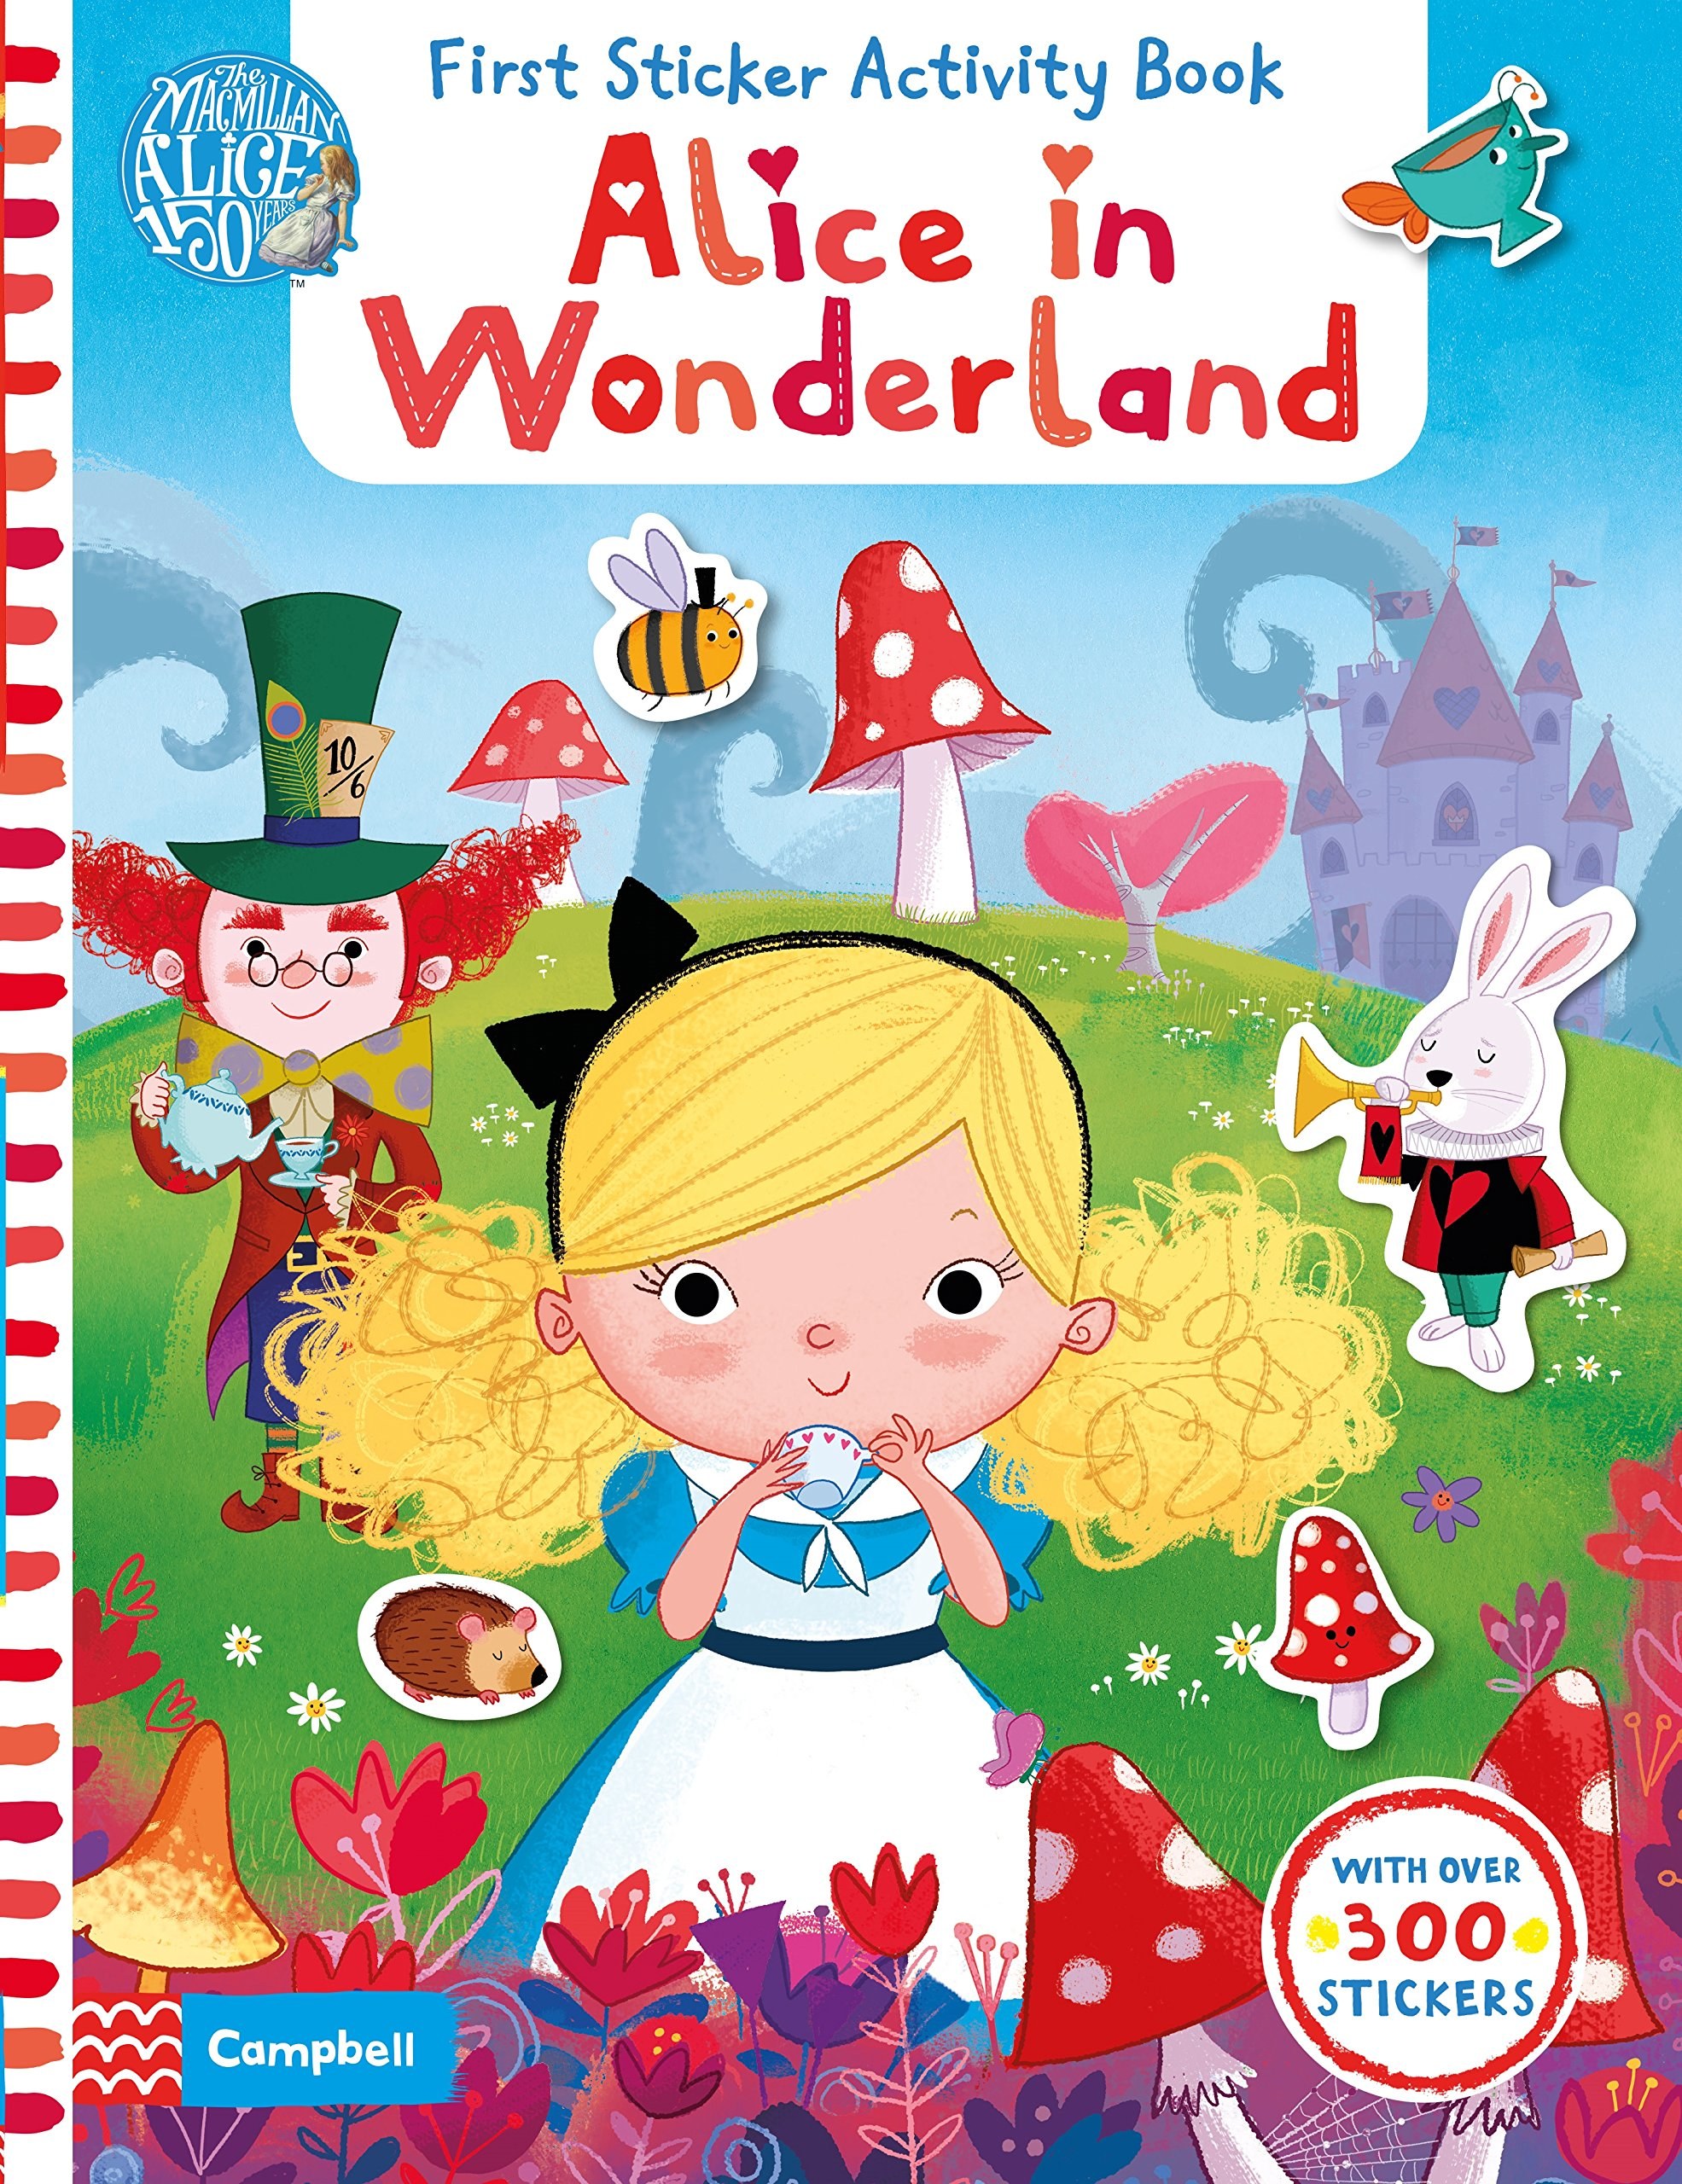 Alice in Wonderland: First Sticker Activity Book first sticker activity for boys